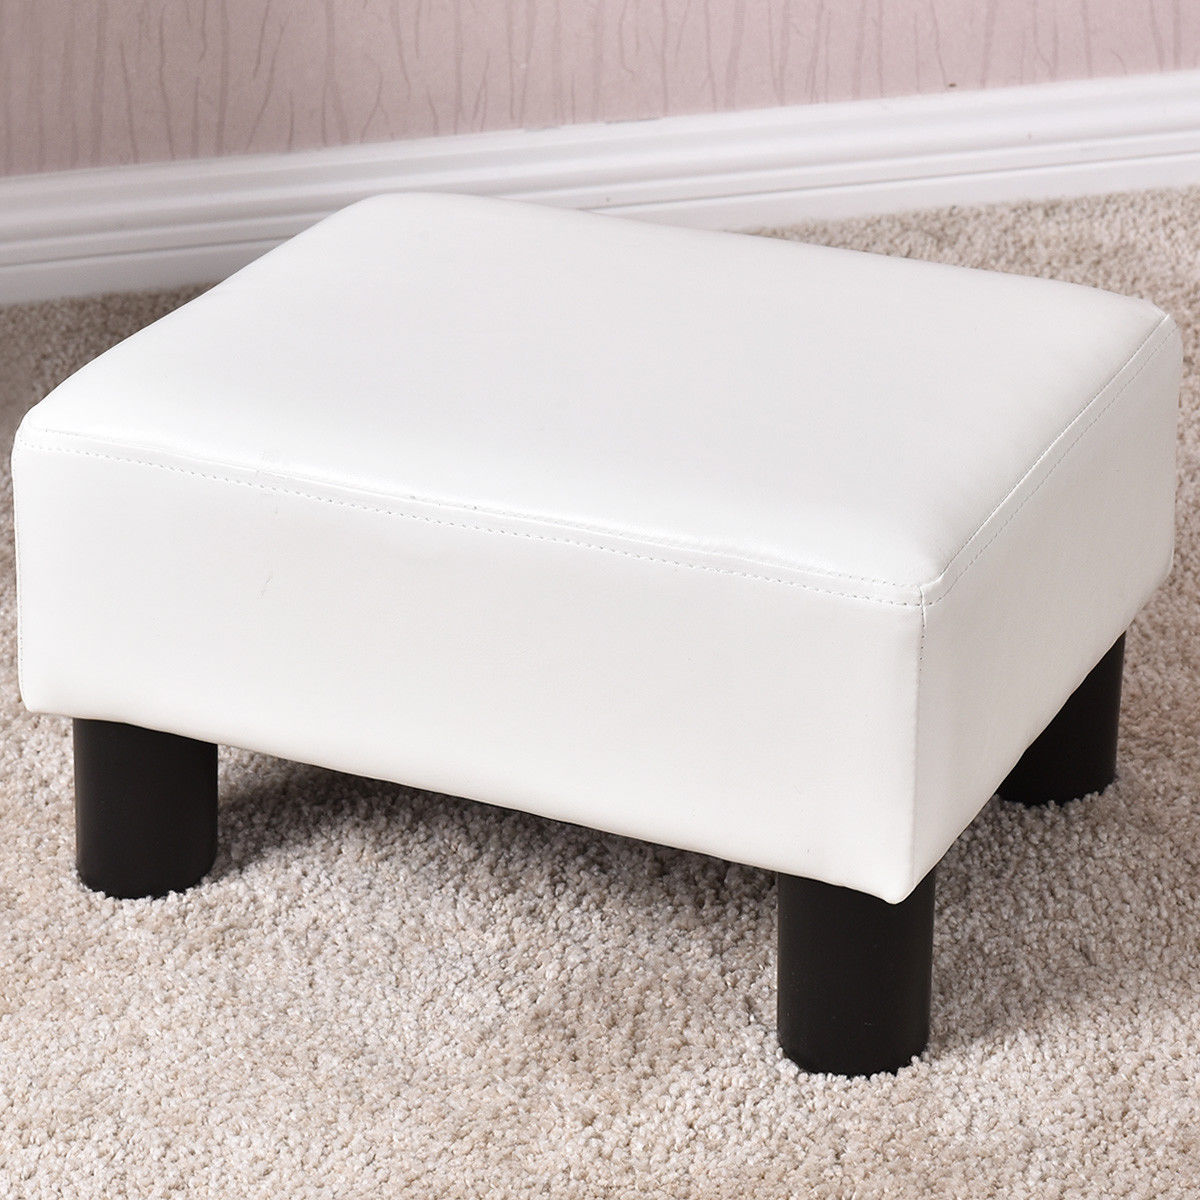 Costway Small Ottoman Footrest PU Leather Footstool Rectangular Seat Stool White by Costway